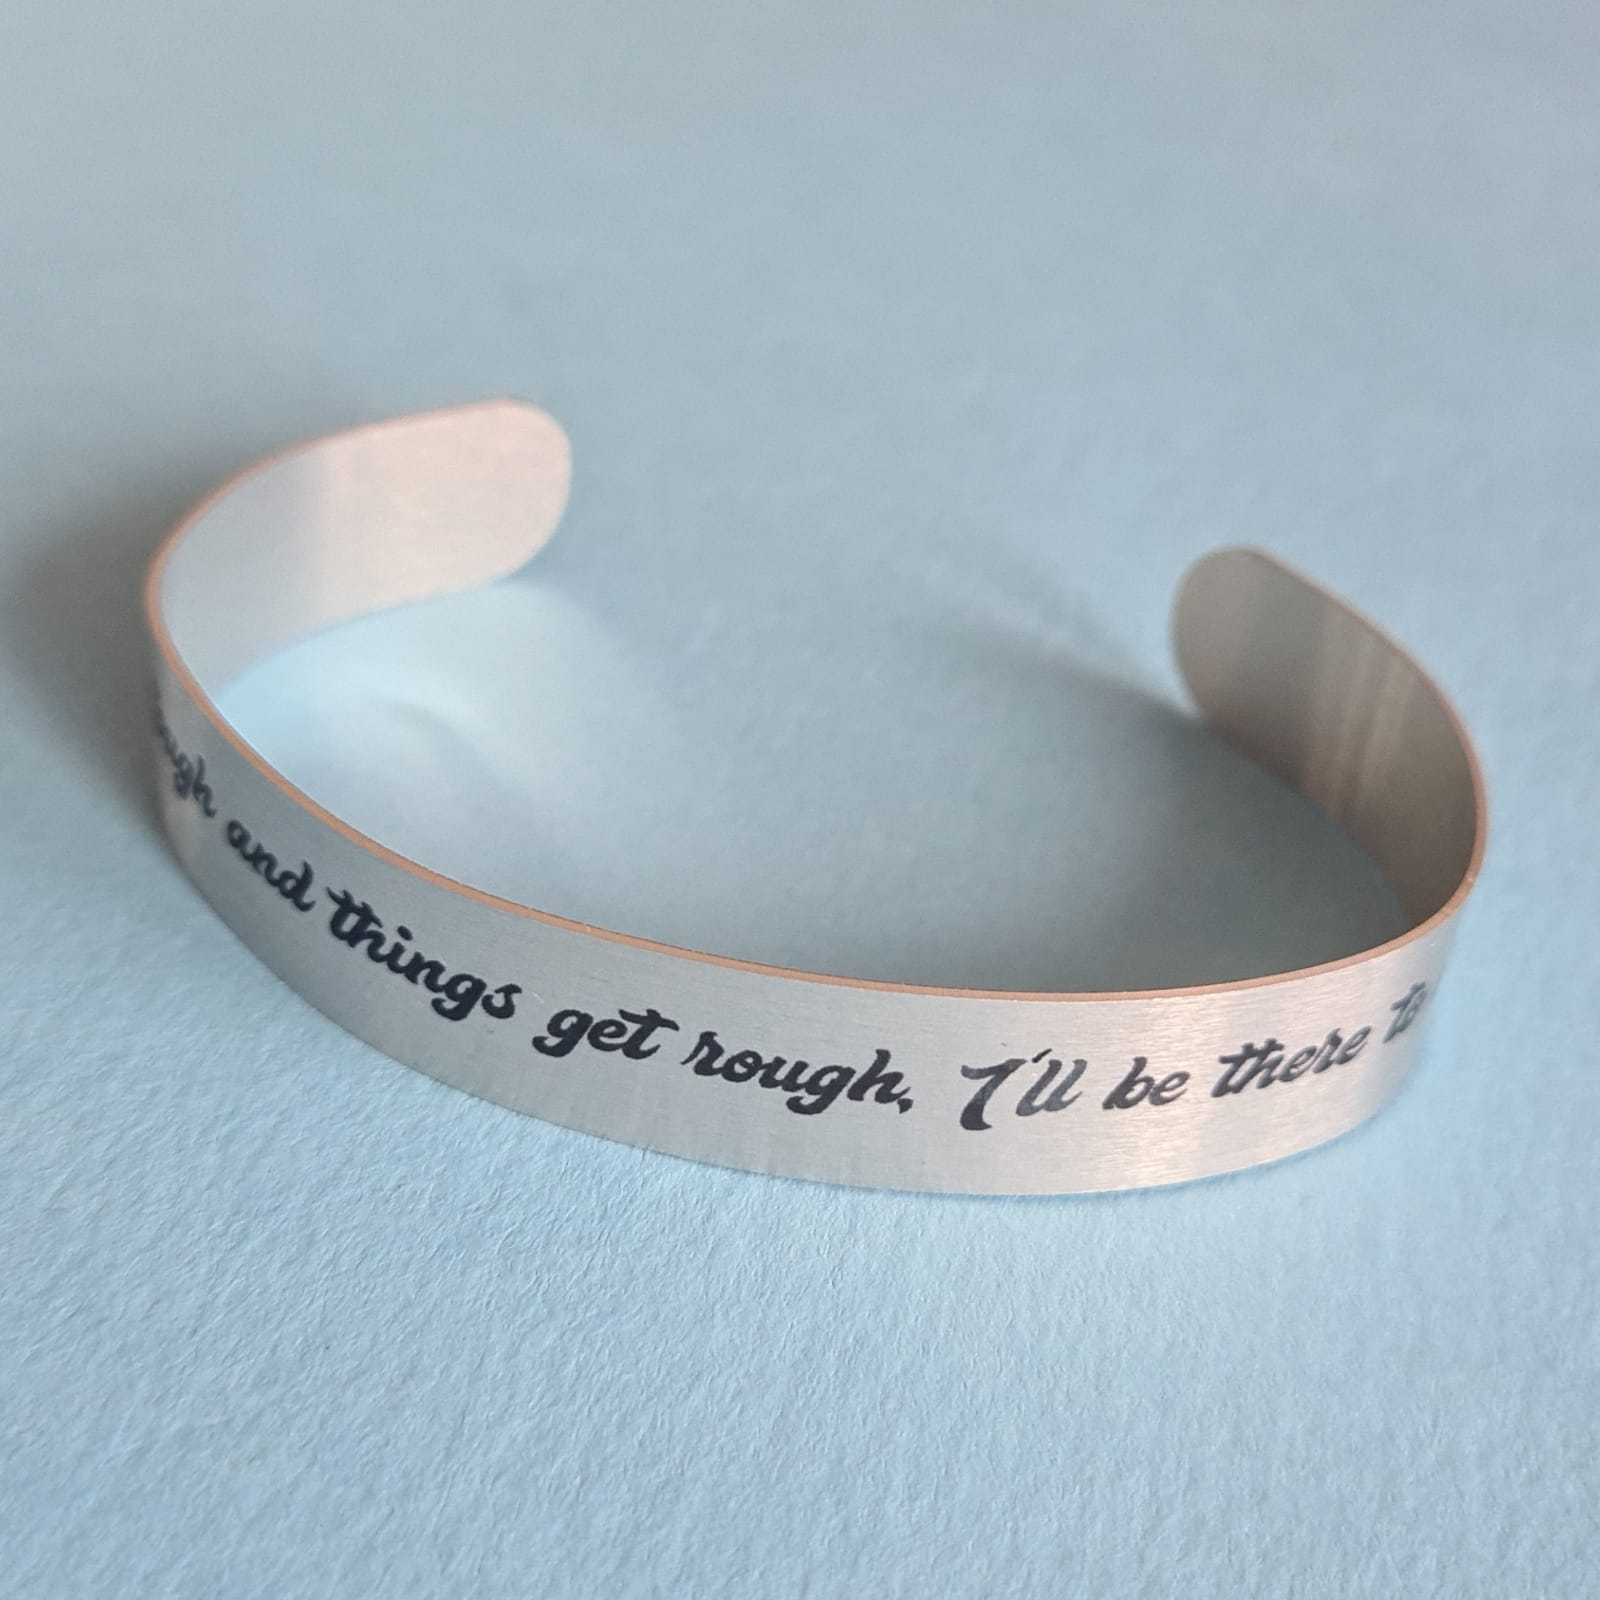 When life is tough and things get rough, I'll be there to hold your hand quote bracelet bangle